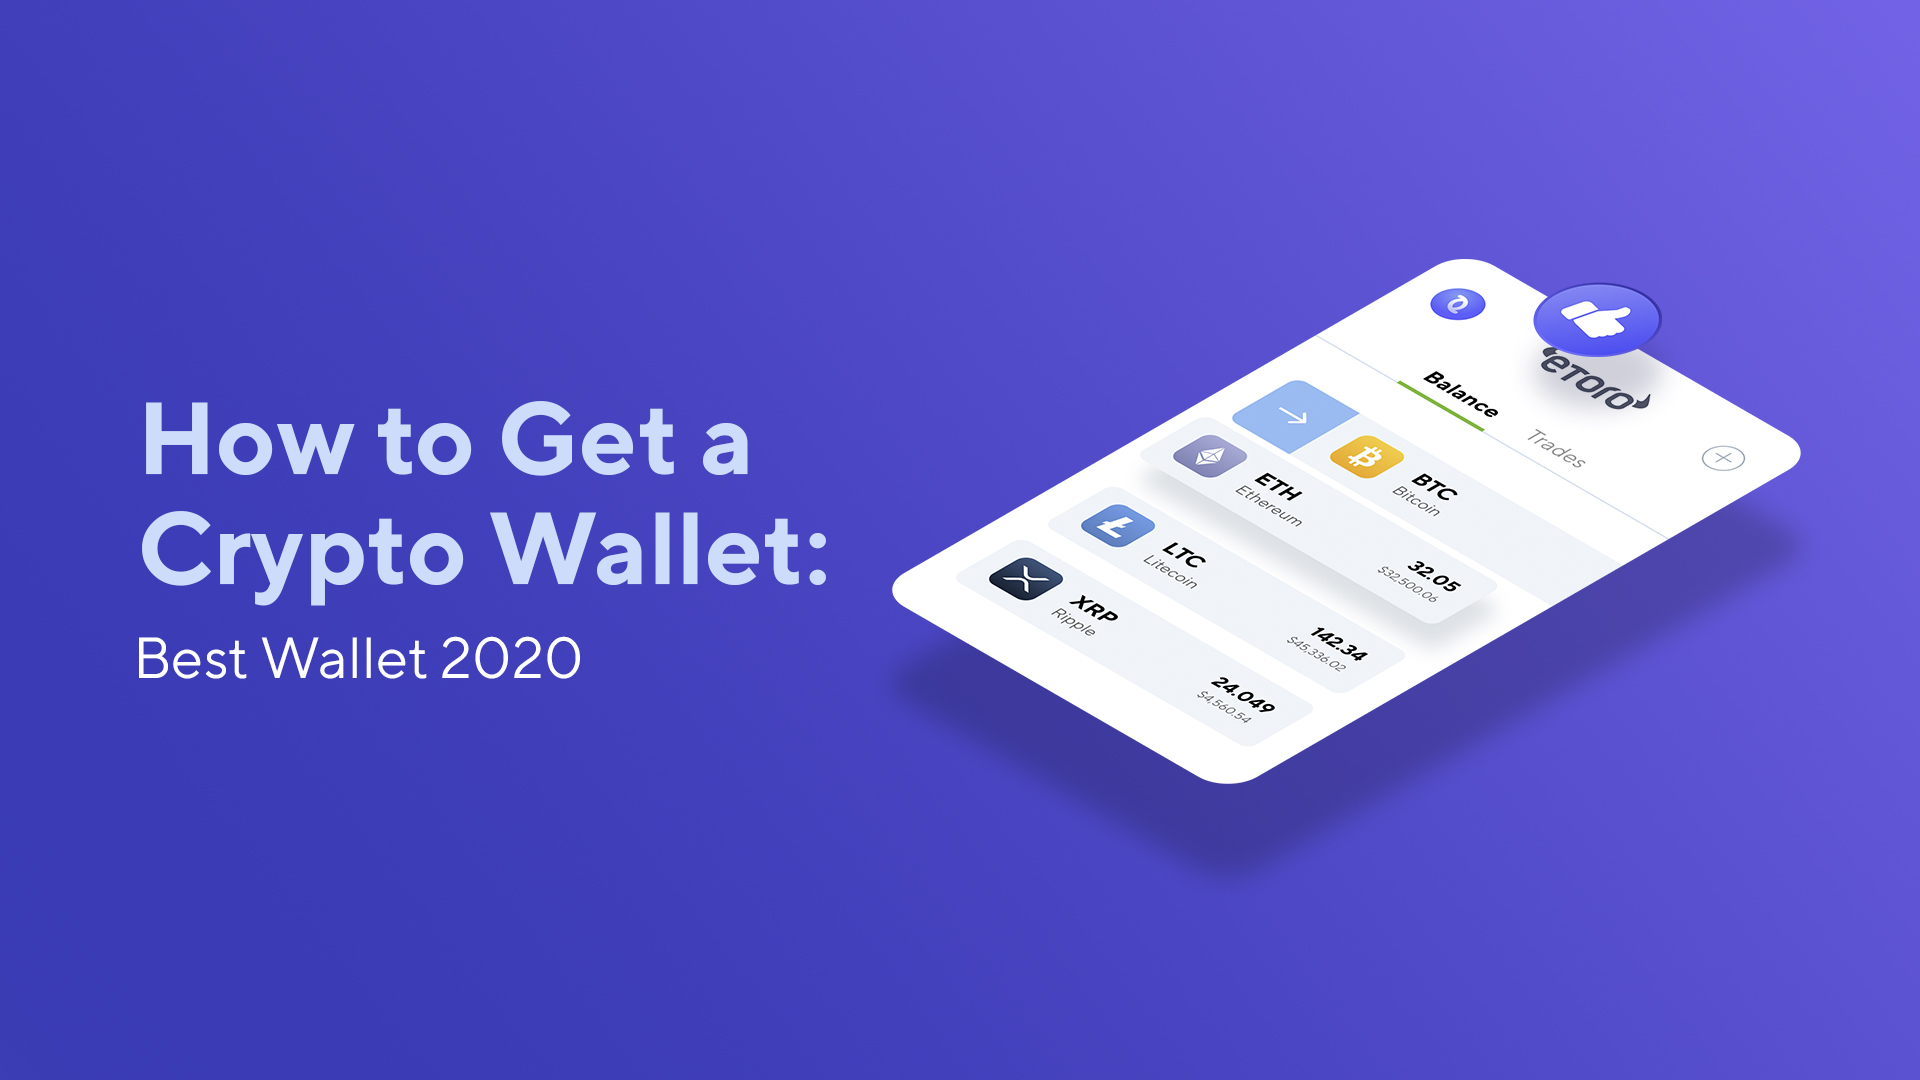 How to Get a Crypto Wallet: Best Cryptocurrency Wallet 2020